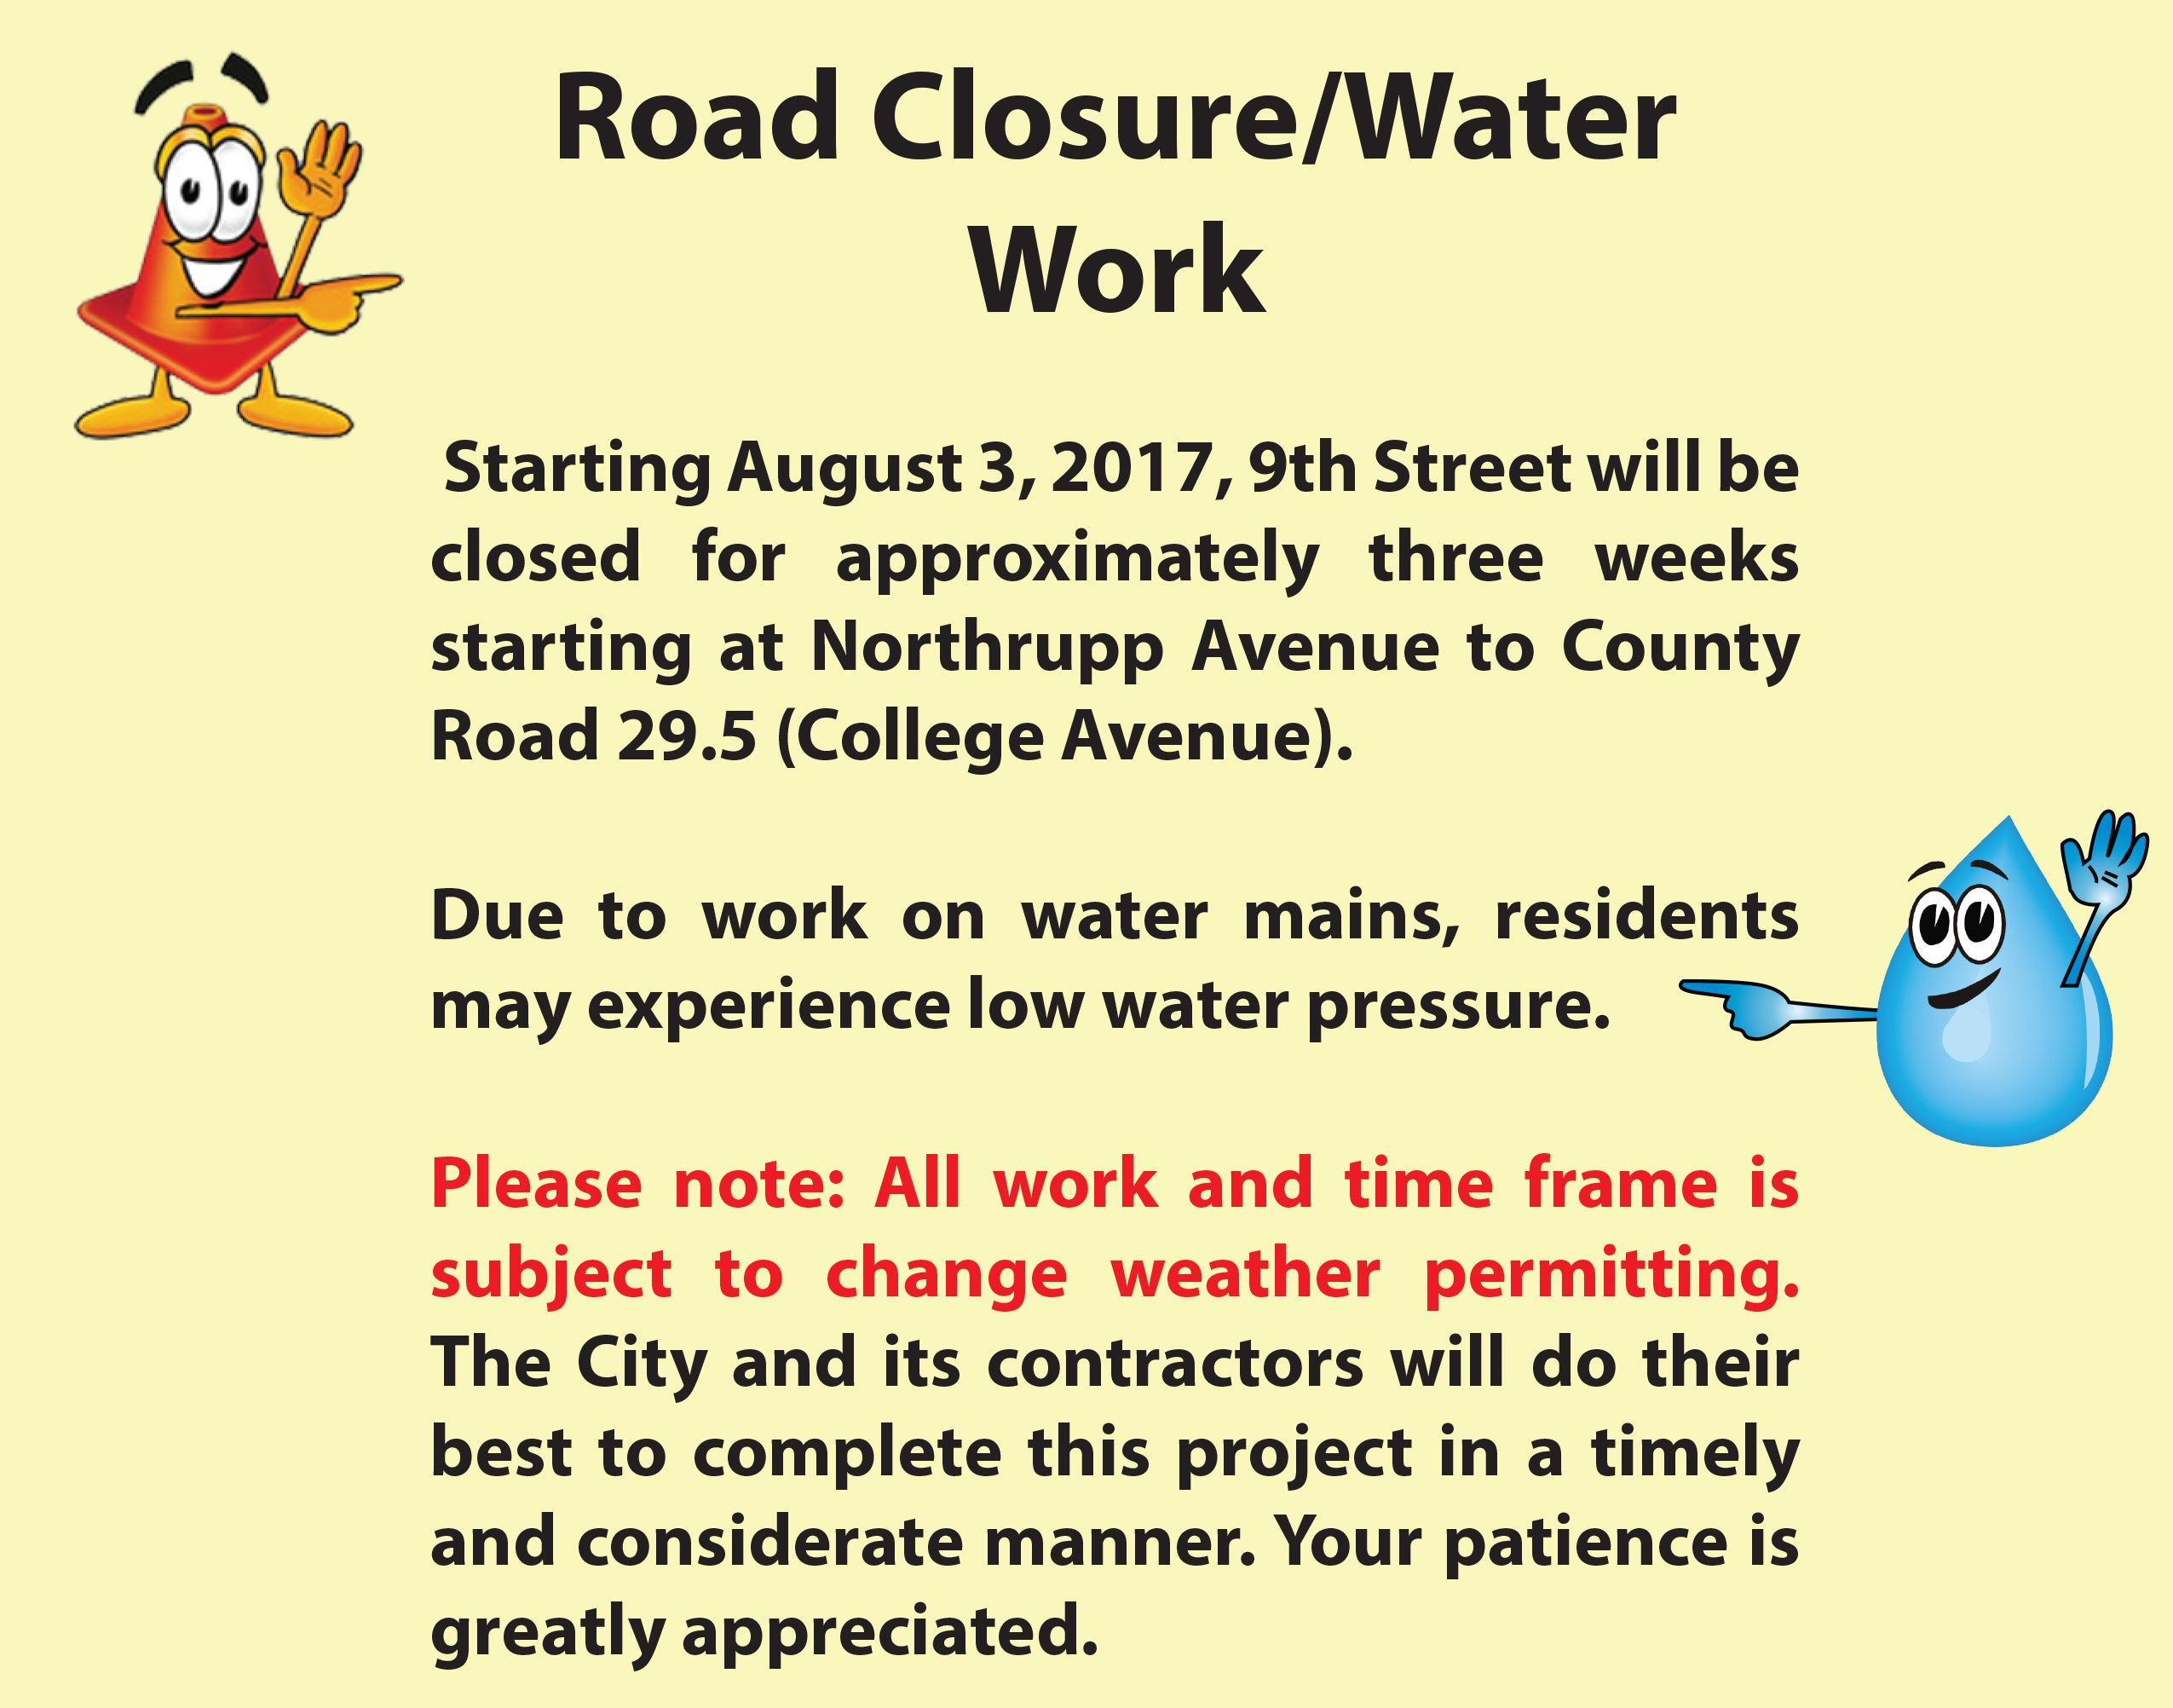 9th St closure and outtage